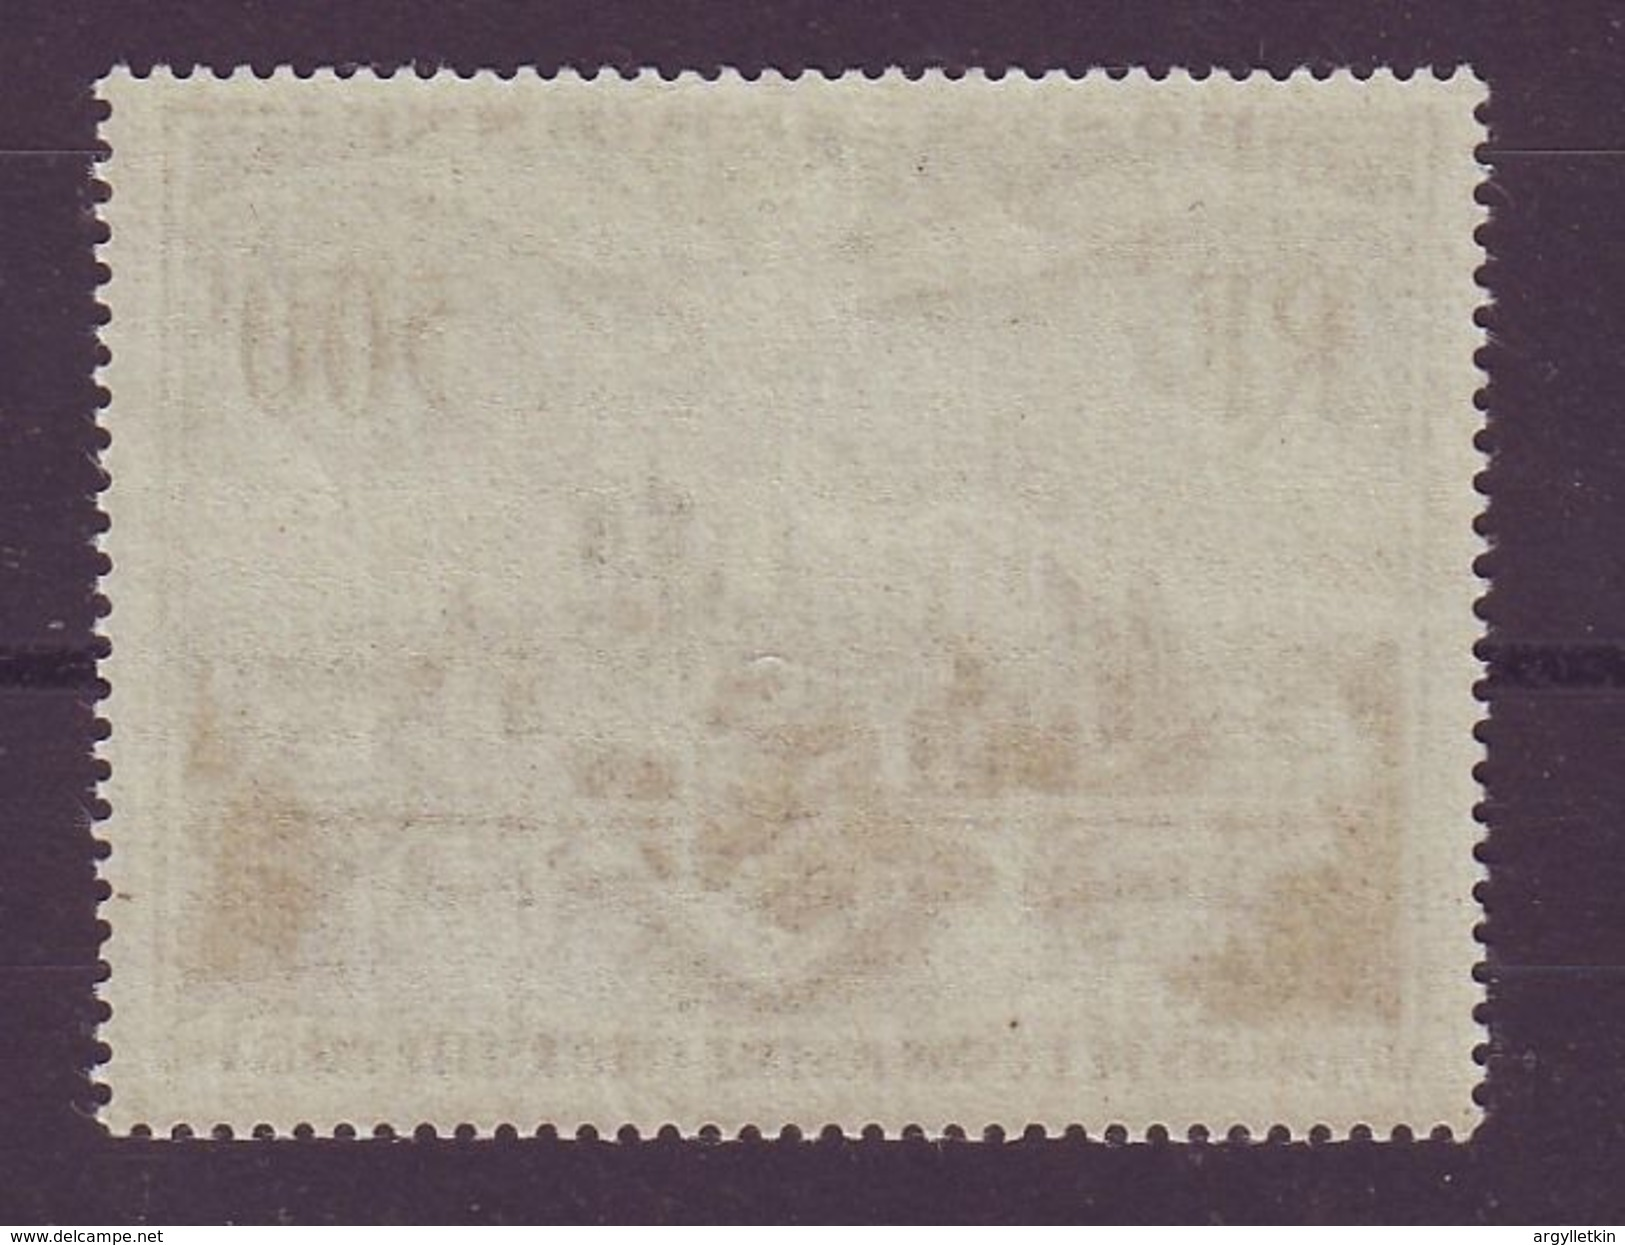 FRANCE 1949 UPU CONGRESS 500f MINT - Unused Stamps